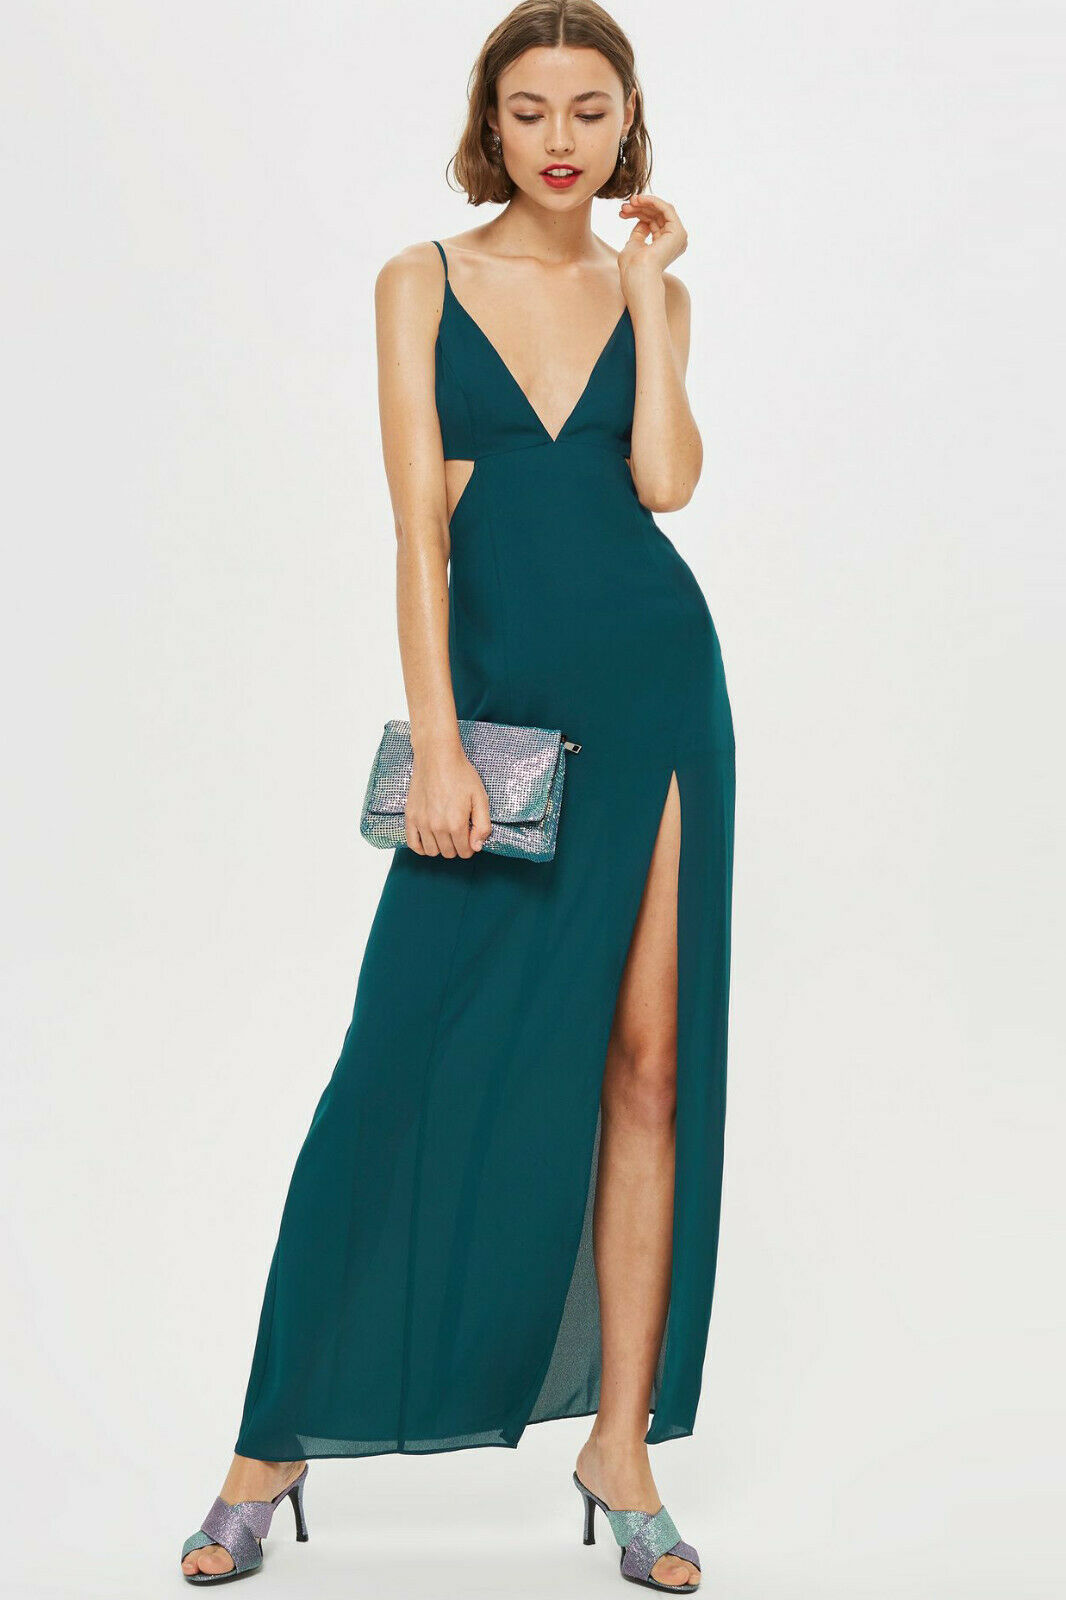 Topshop NEW Cut Out Side Maxi Dress in Teal Green